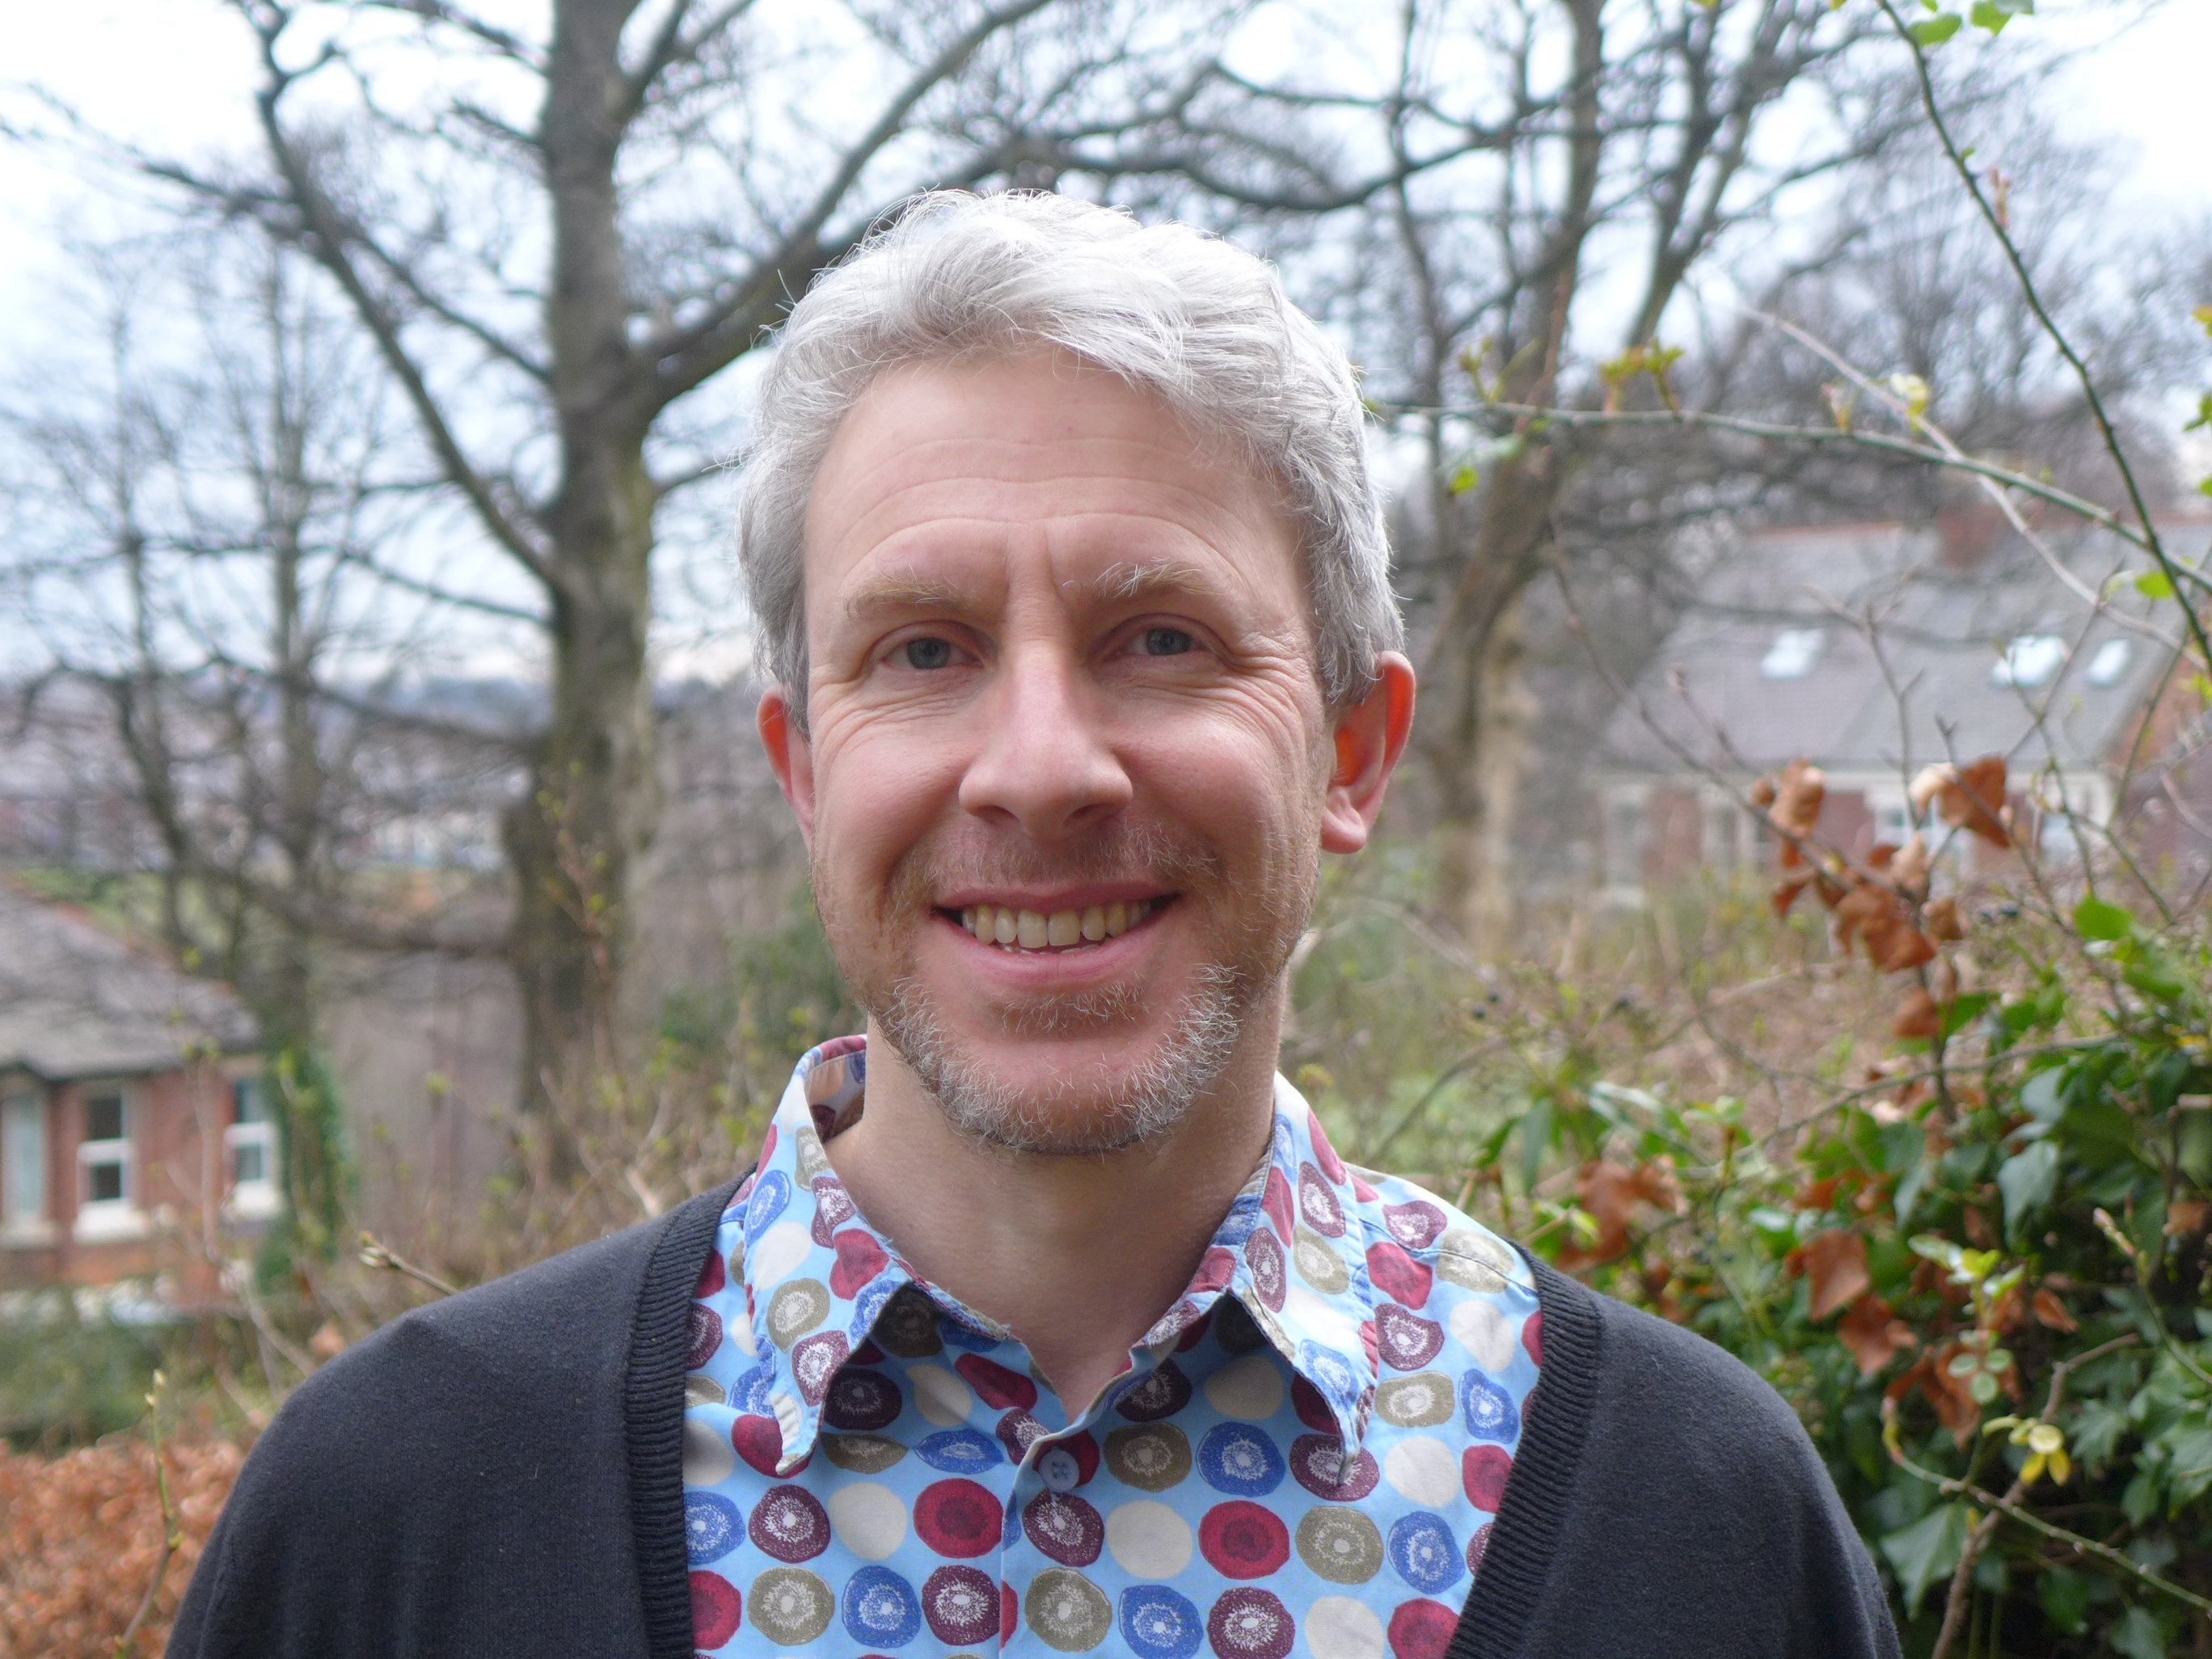 6 Questions for Alastair Bonnett, author of 'Beyond the Map'